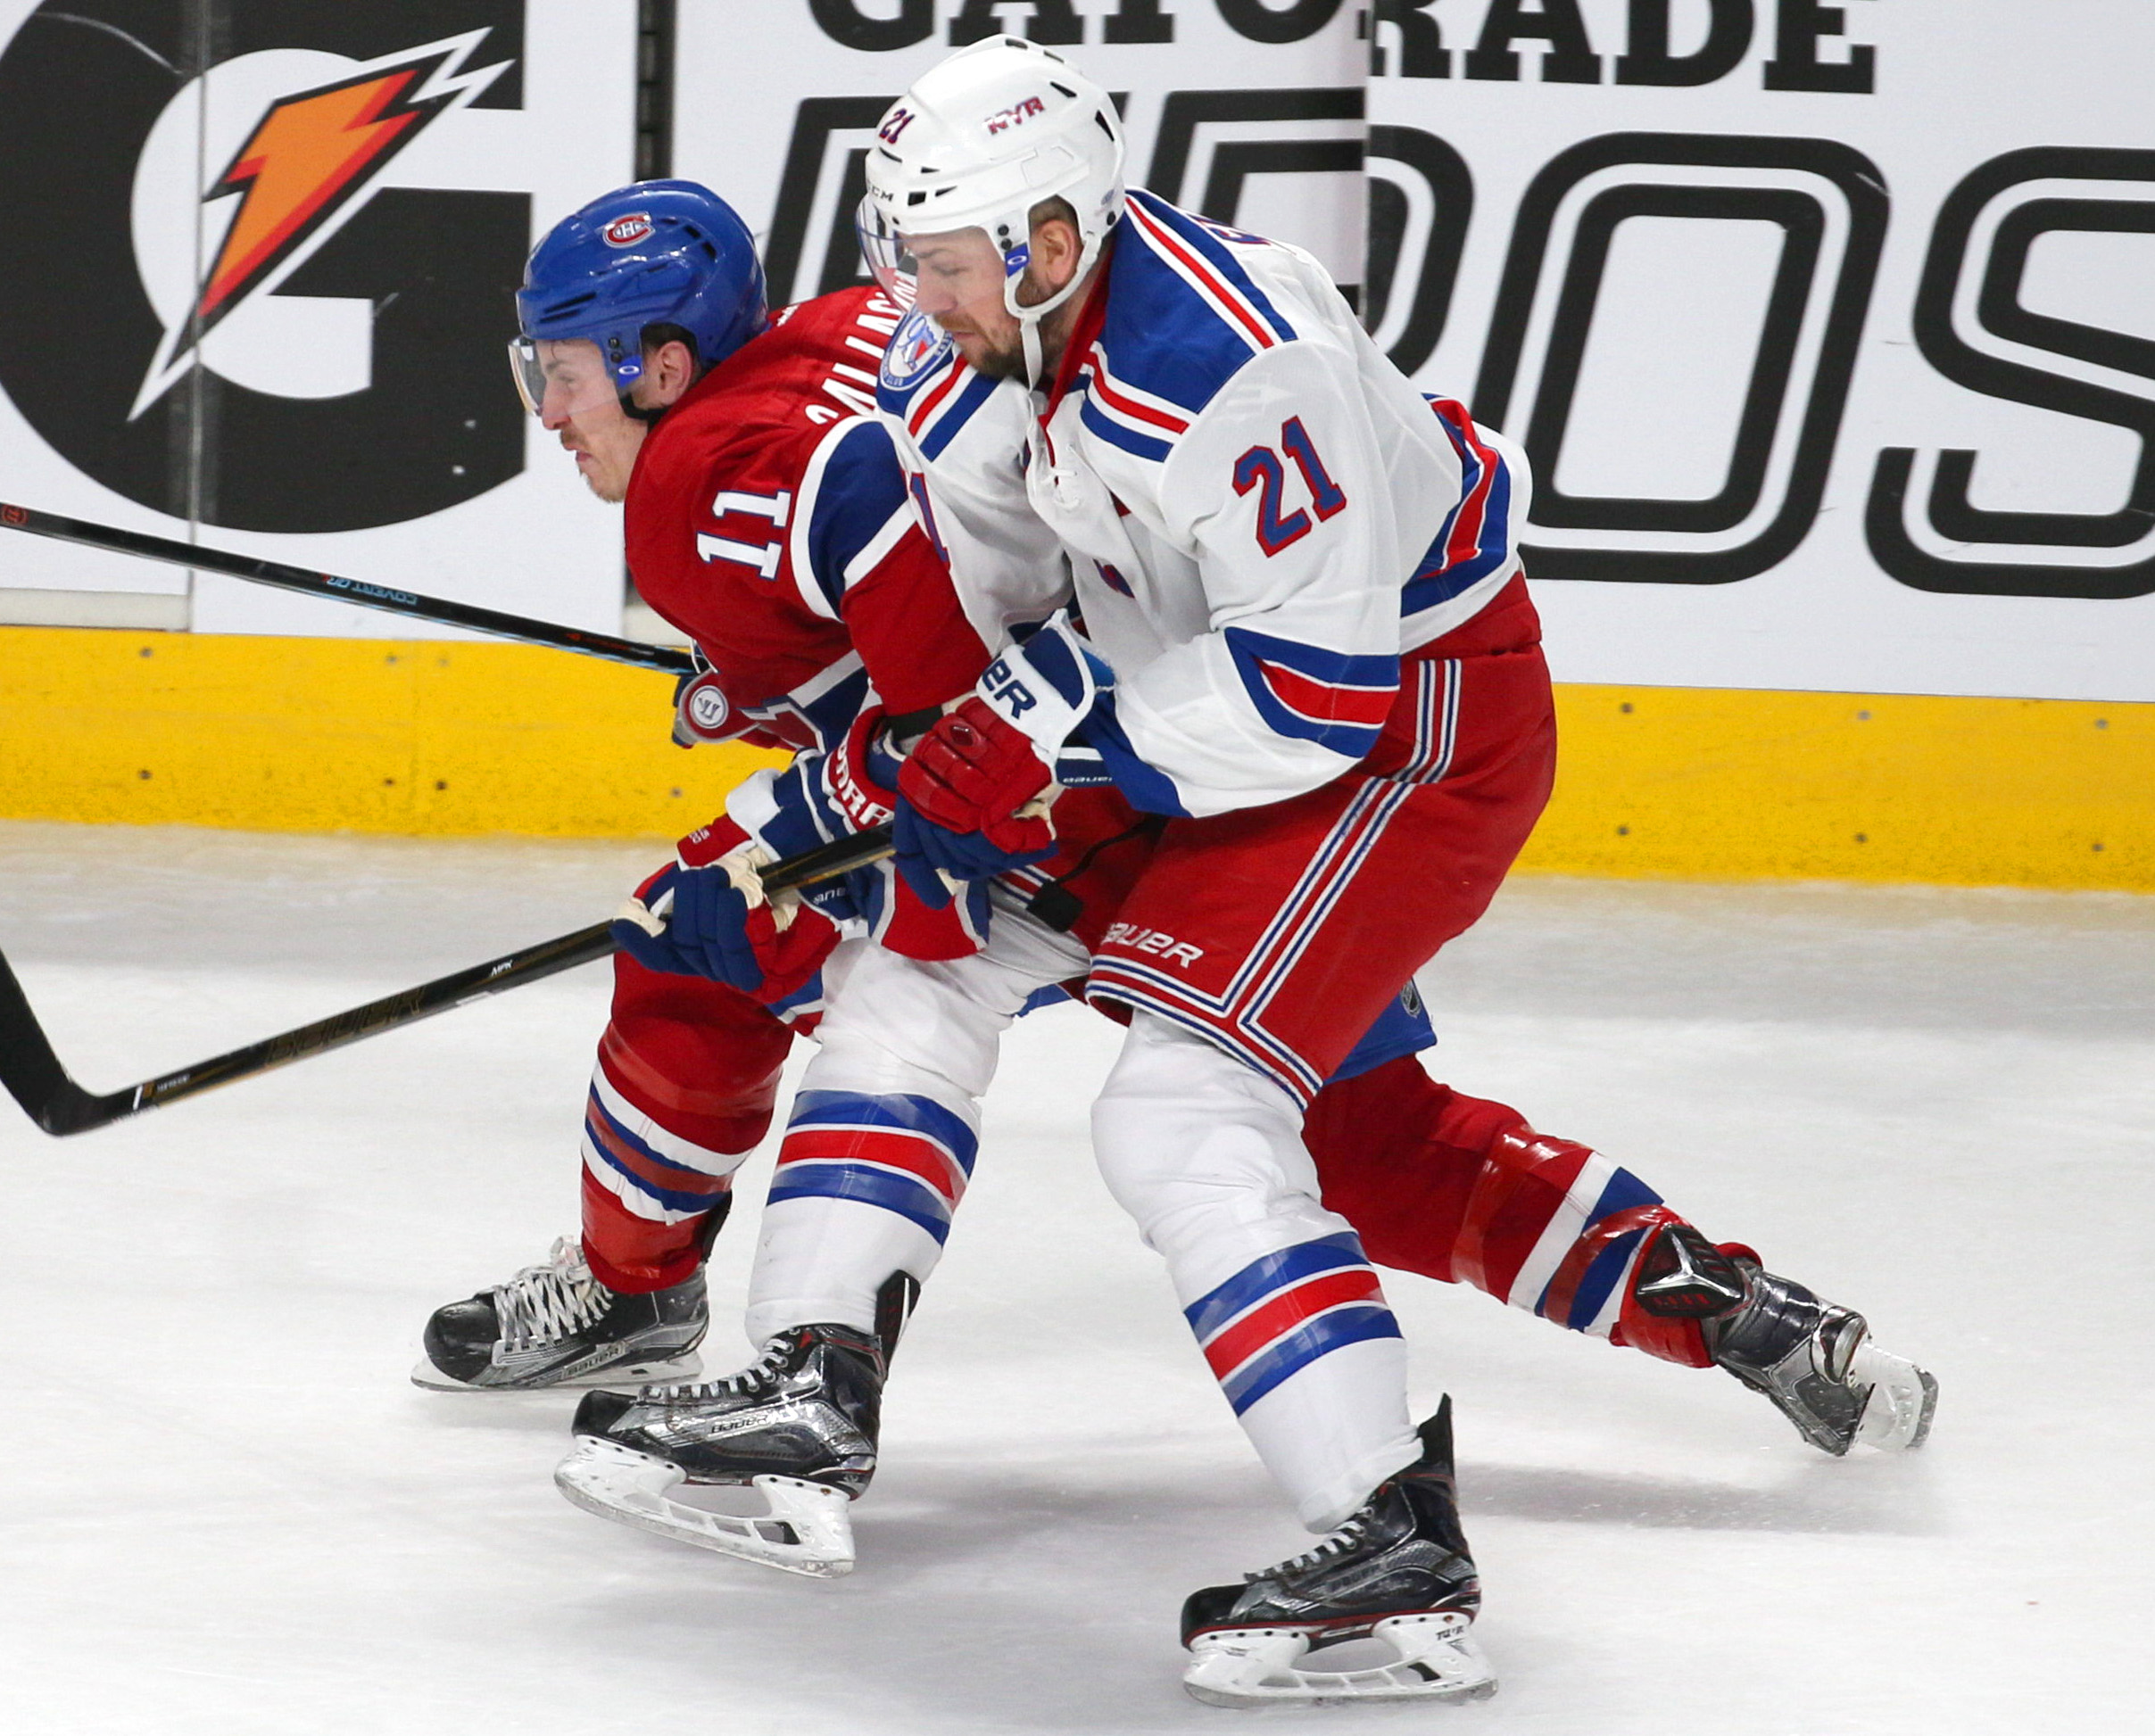 10018271-nhl-stanley-cup-playoffs-new-york-rangers-at-montreal-canadiens